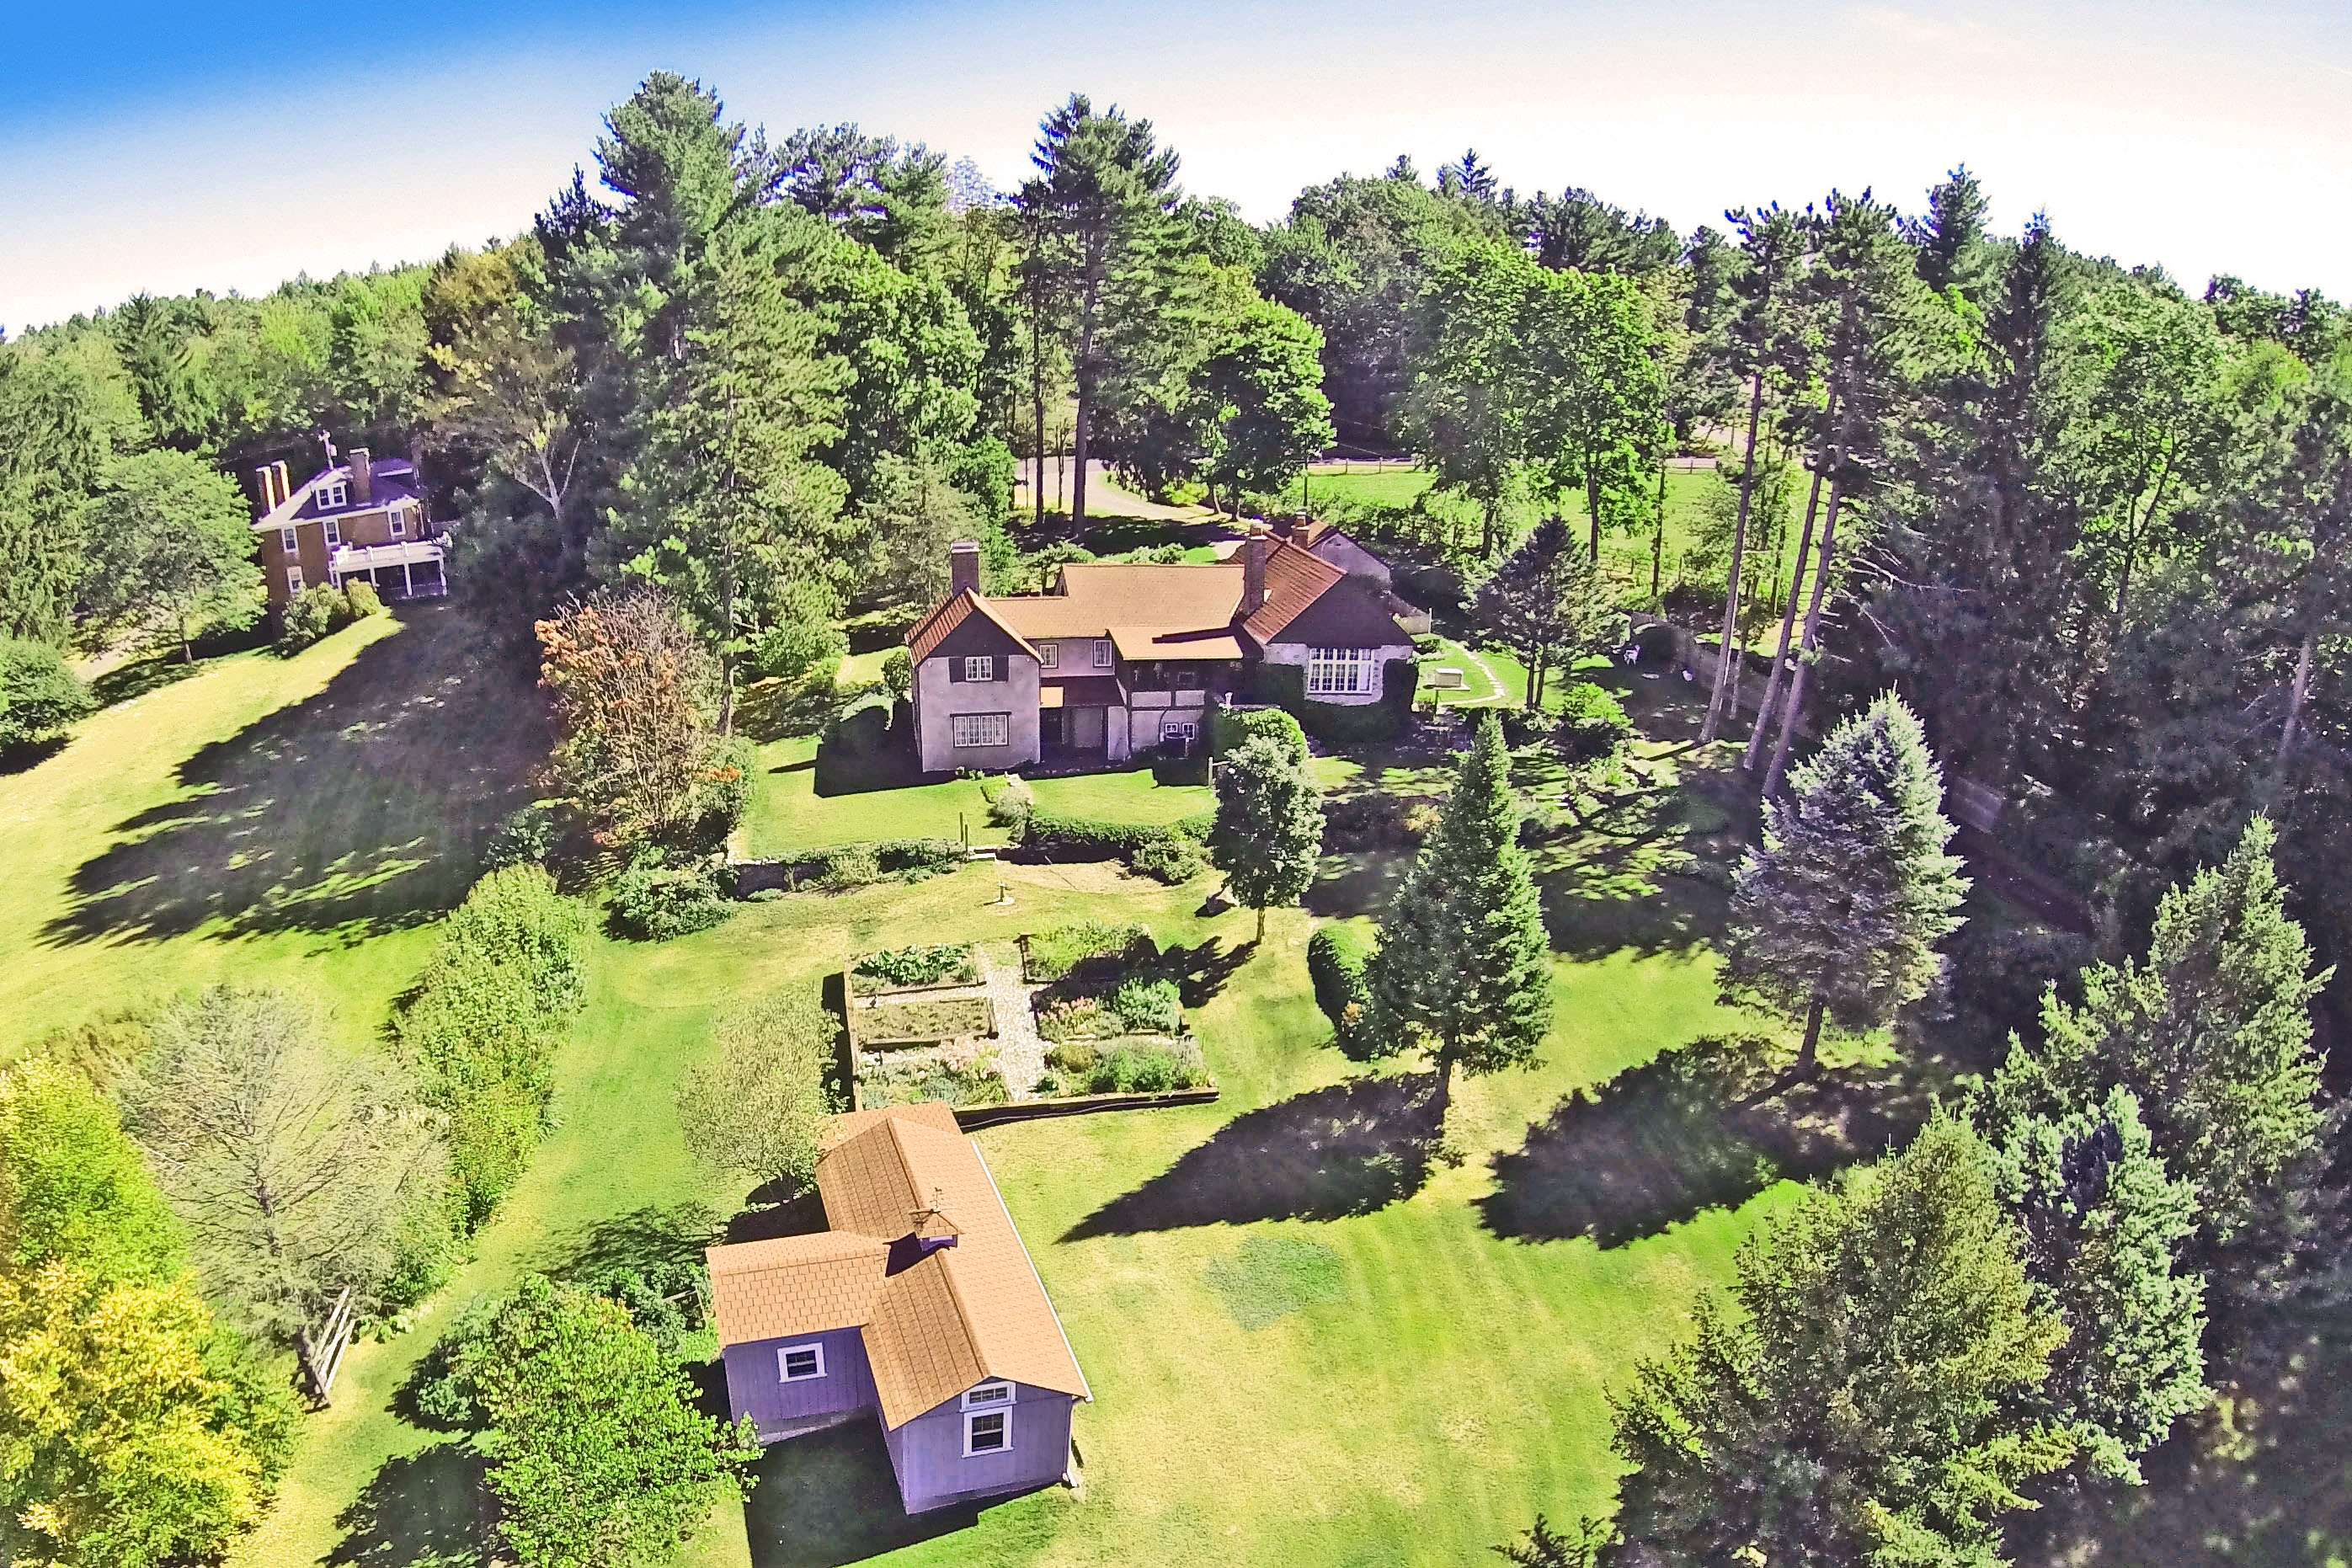 Single Family Home for Sale at 1910 Country Property 40 Bolton Road Harvard, Massachusetts, 01451 United States